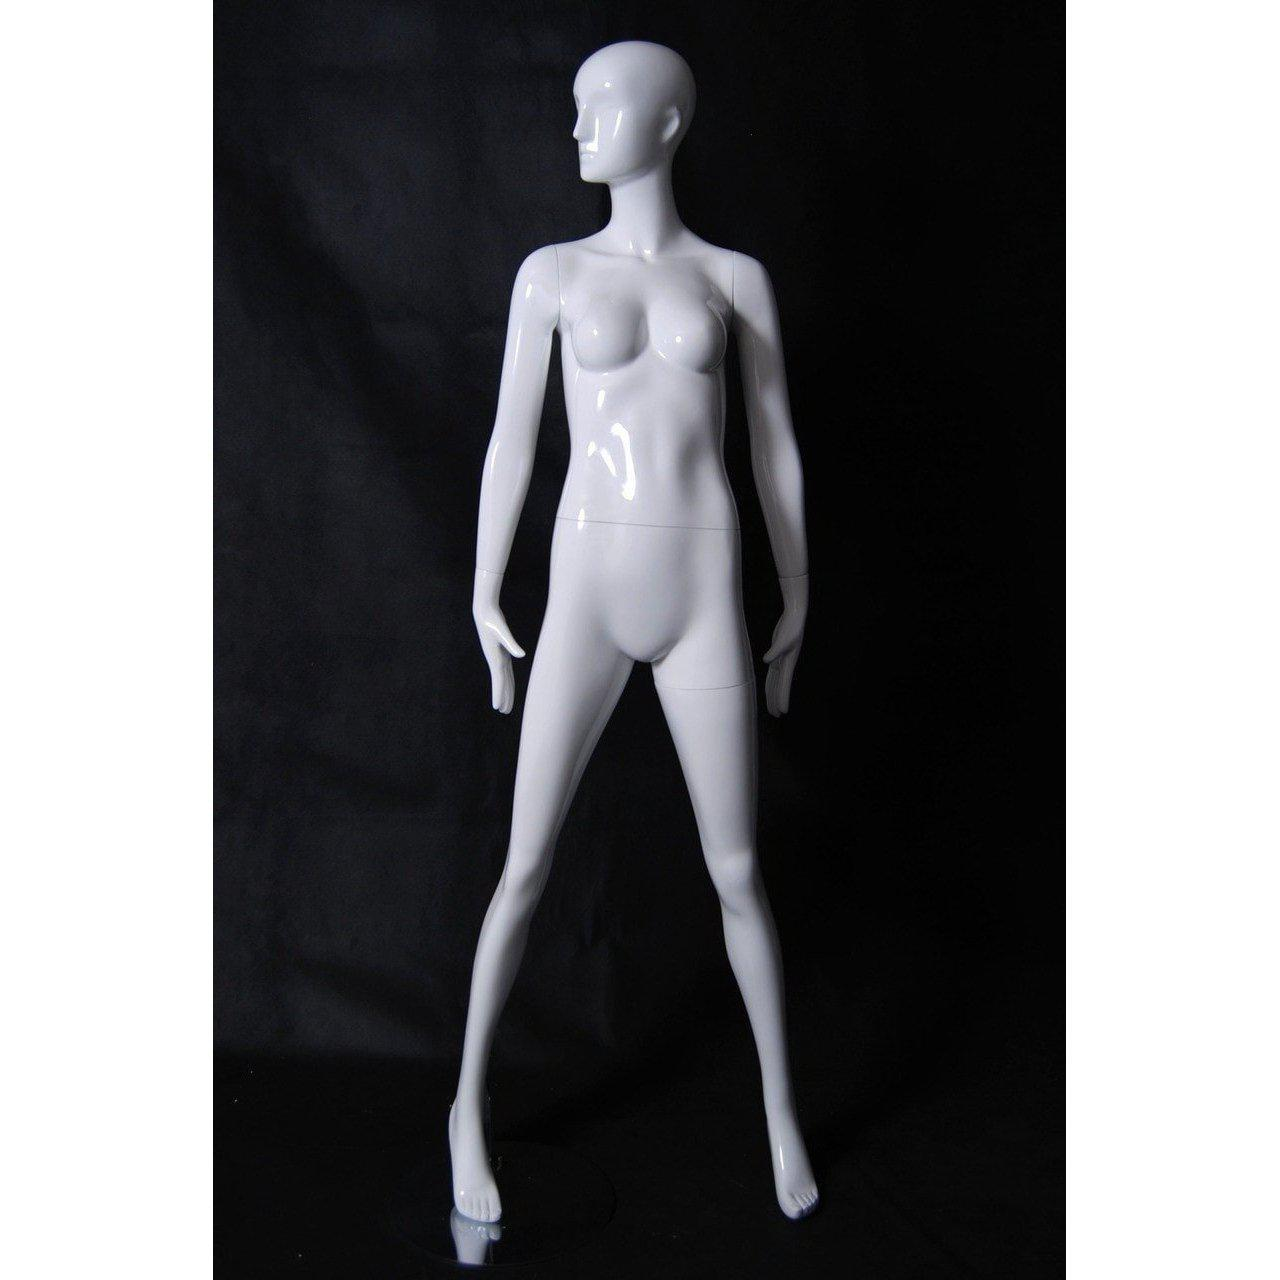 Mannequin Mall Abstract Female Mannequin MM-RXD02W For Fashion Stores and Retail Shops